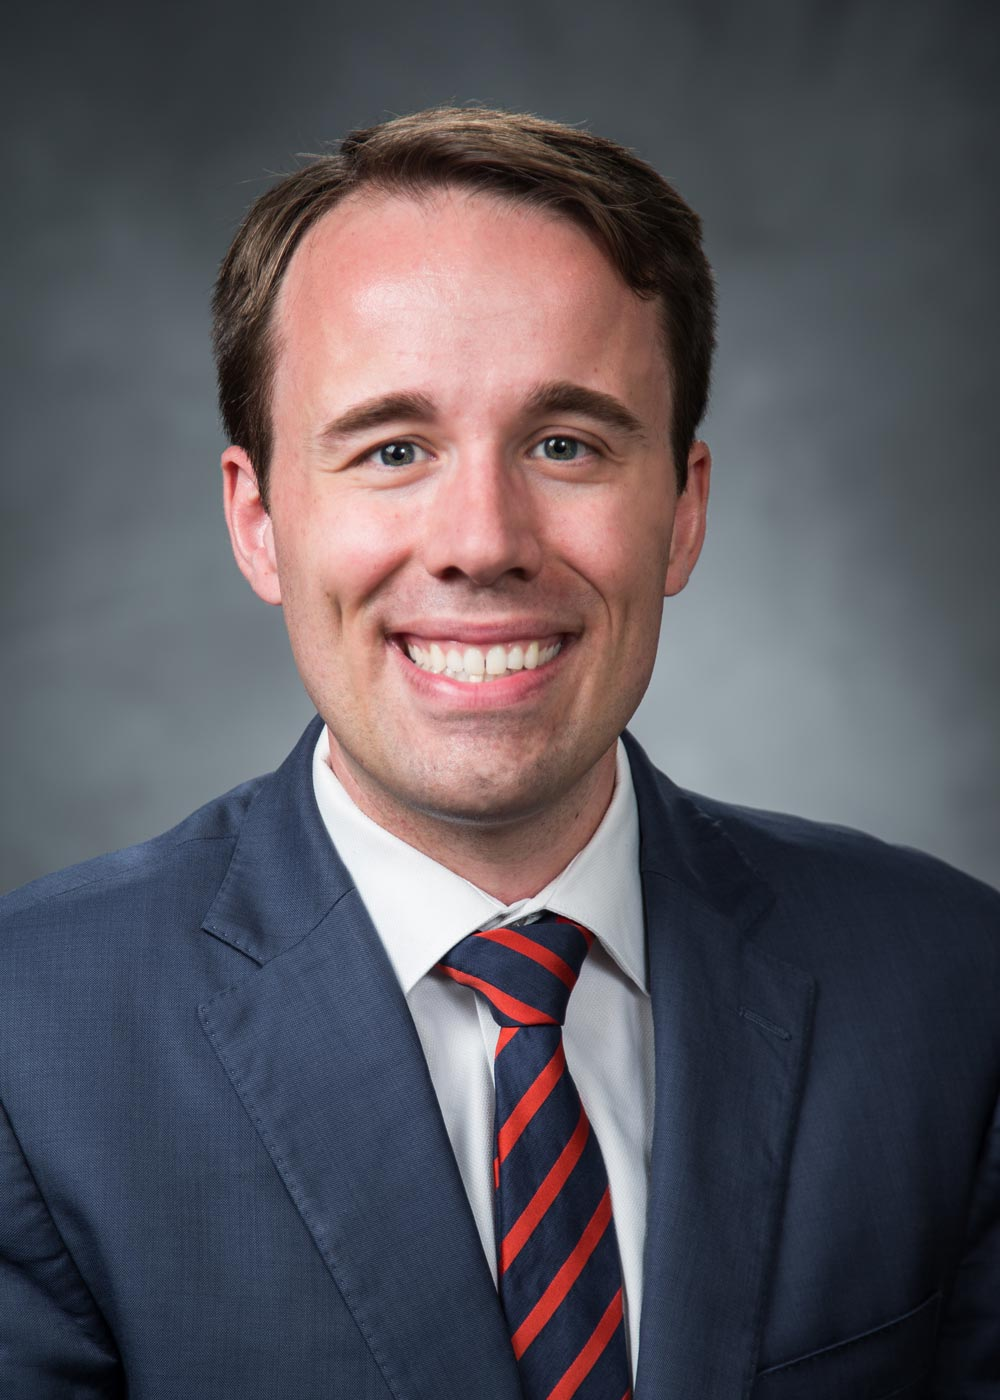 John Holbein is an assistant professor of public policy and education in the Frank Batten School of Leadership and Public Policy.